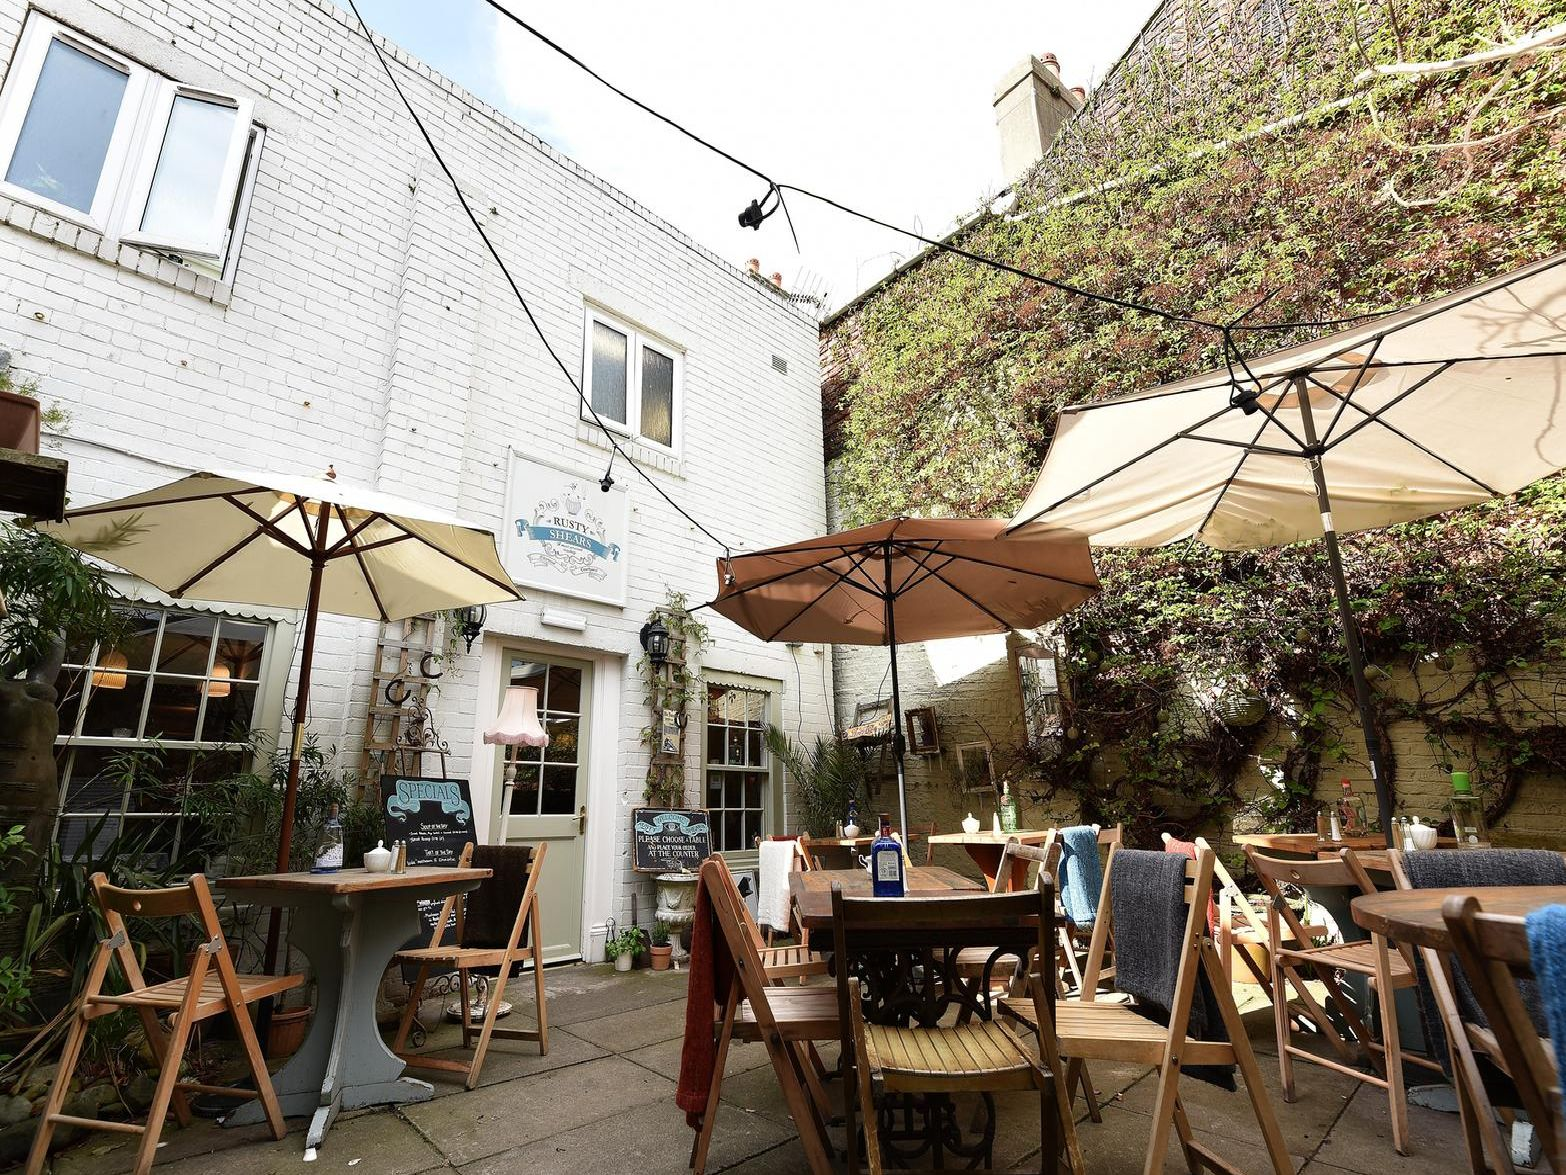 "Boasts a lovely courtyard and praised on TripAdvisor for its friendly service, good food - a ""quirky tea shop"" said another reviewer."